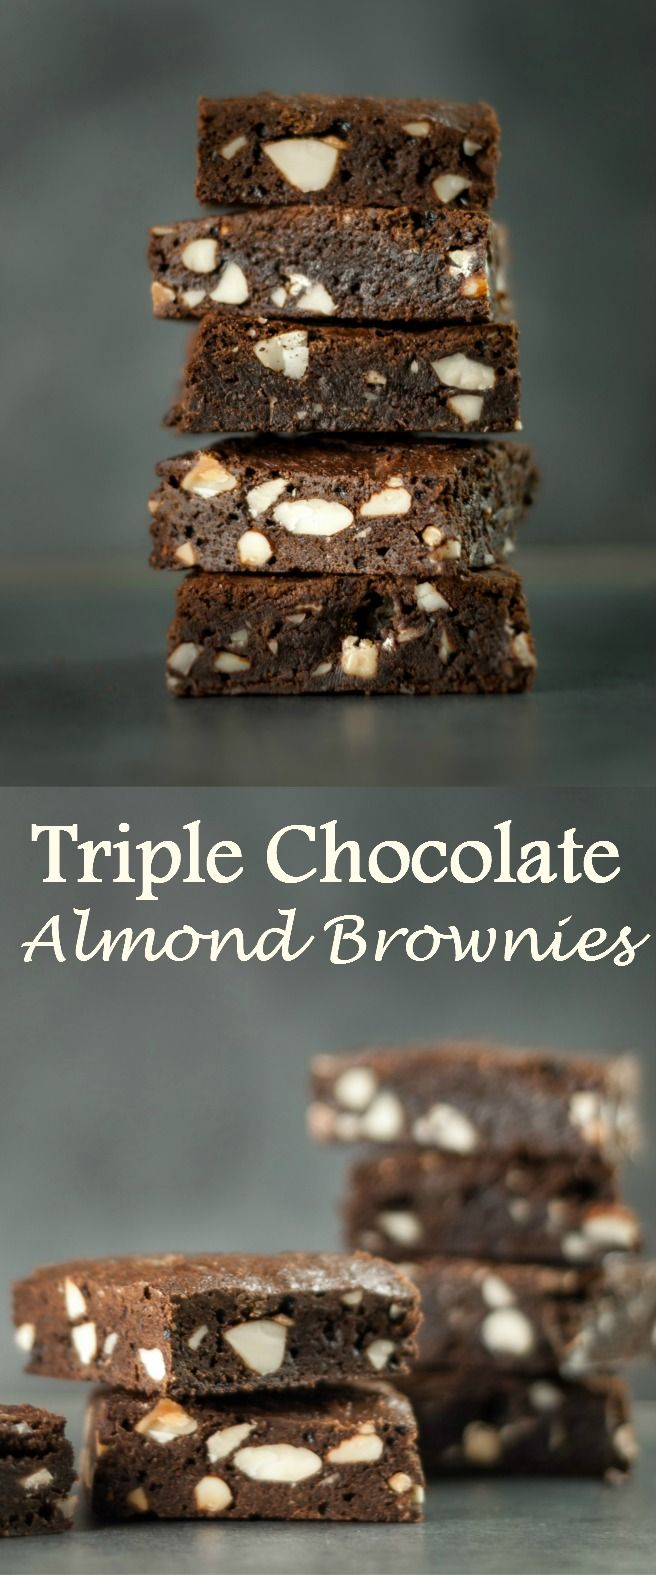 Super rich in flavour, dense yet chewy in the middle, those brownies offer the perfect cross between cookie and a cake.